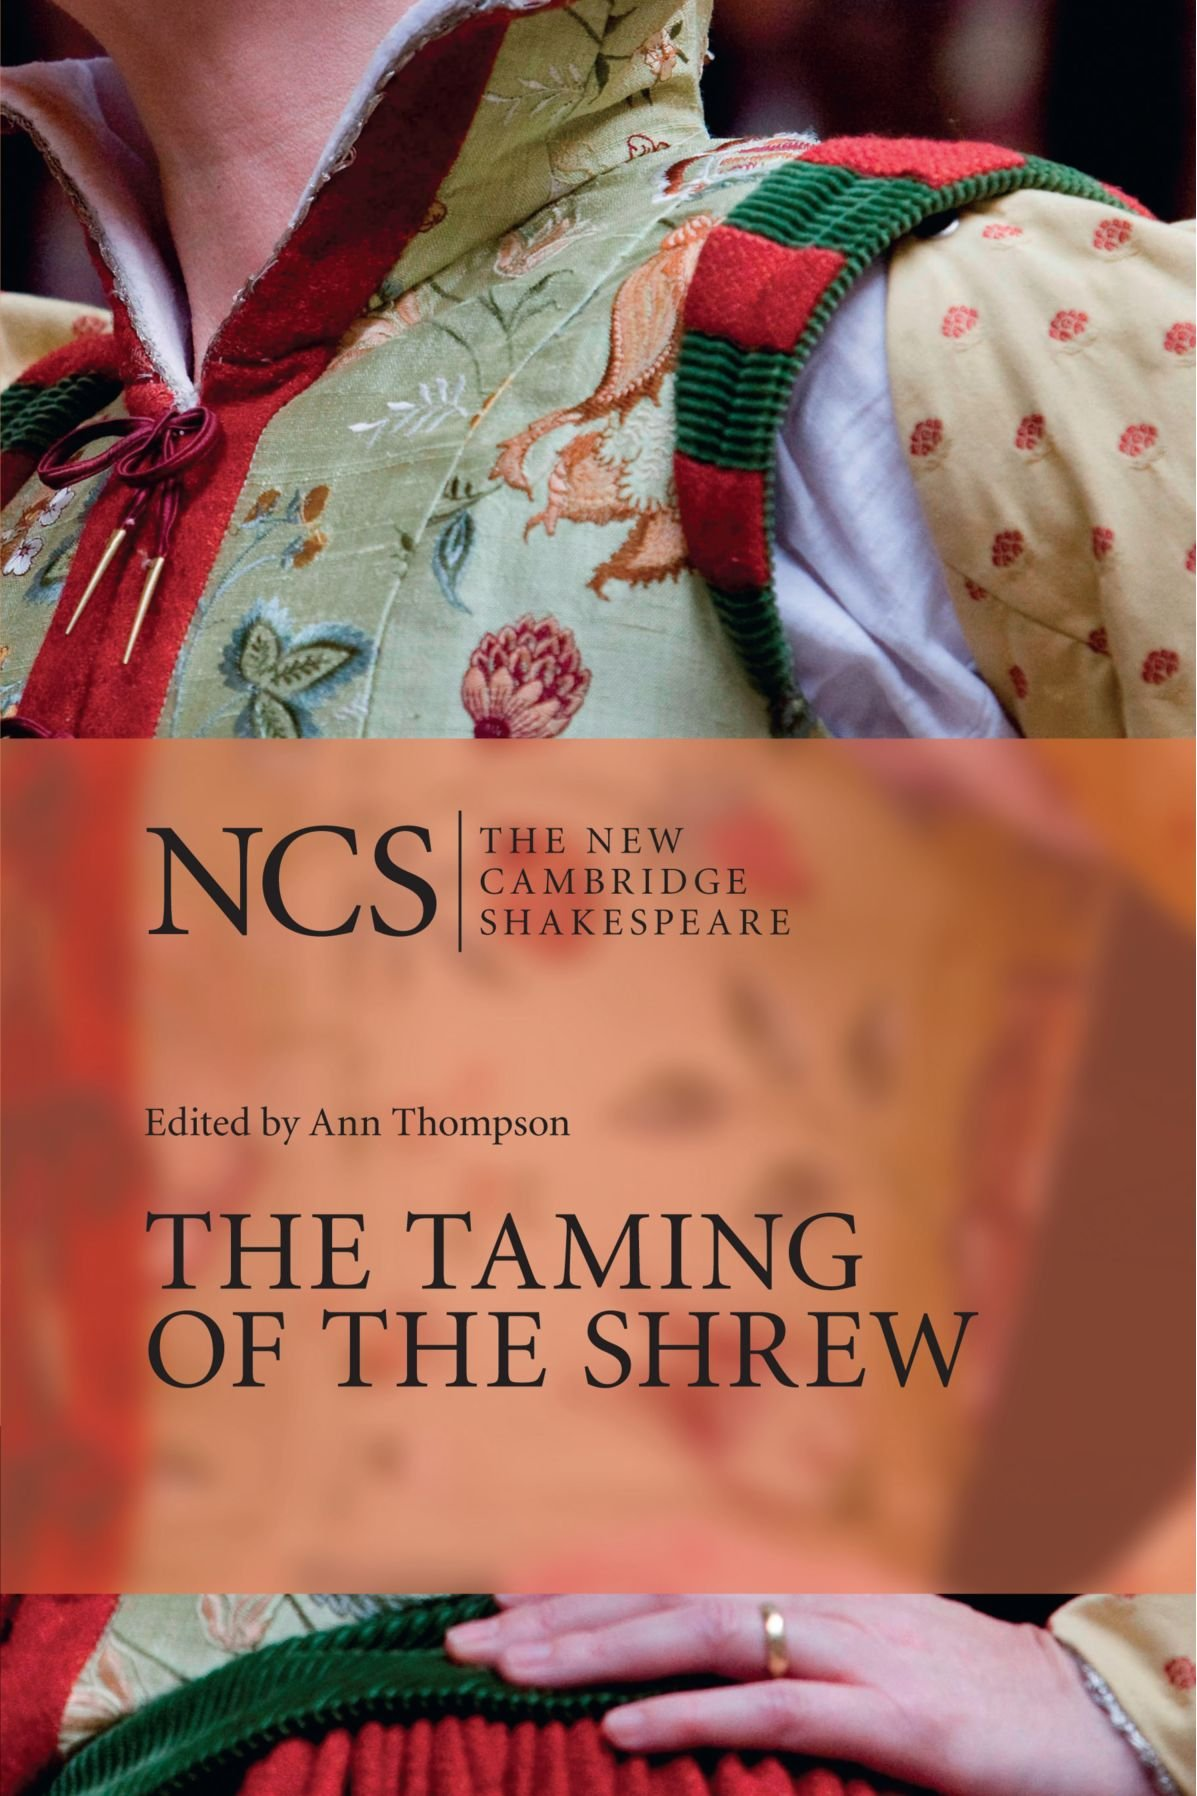 the taming of the shrew the new cambridge shakespeare amazon co the taming of the shrew the new cambridge shakespeare amazon co uk ann thompson 9780719577192 books